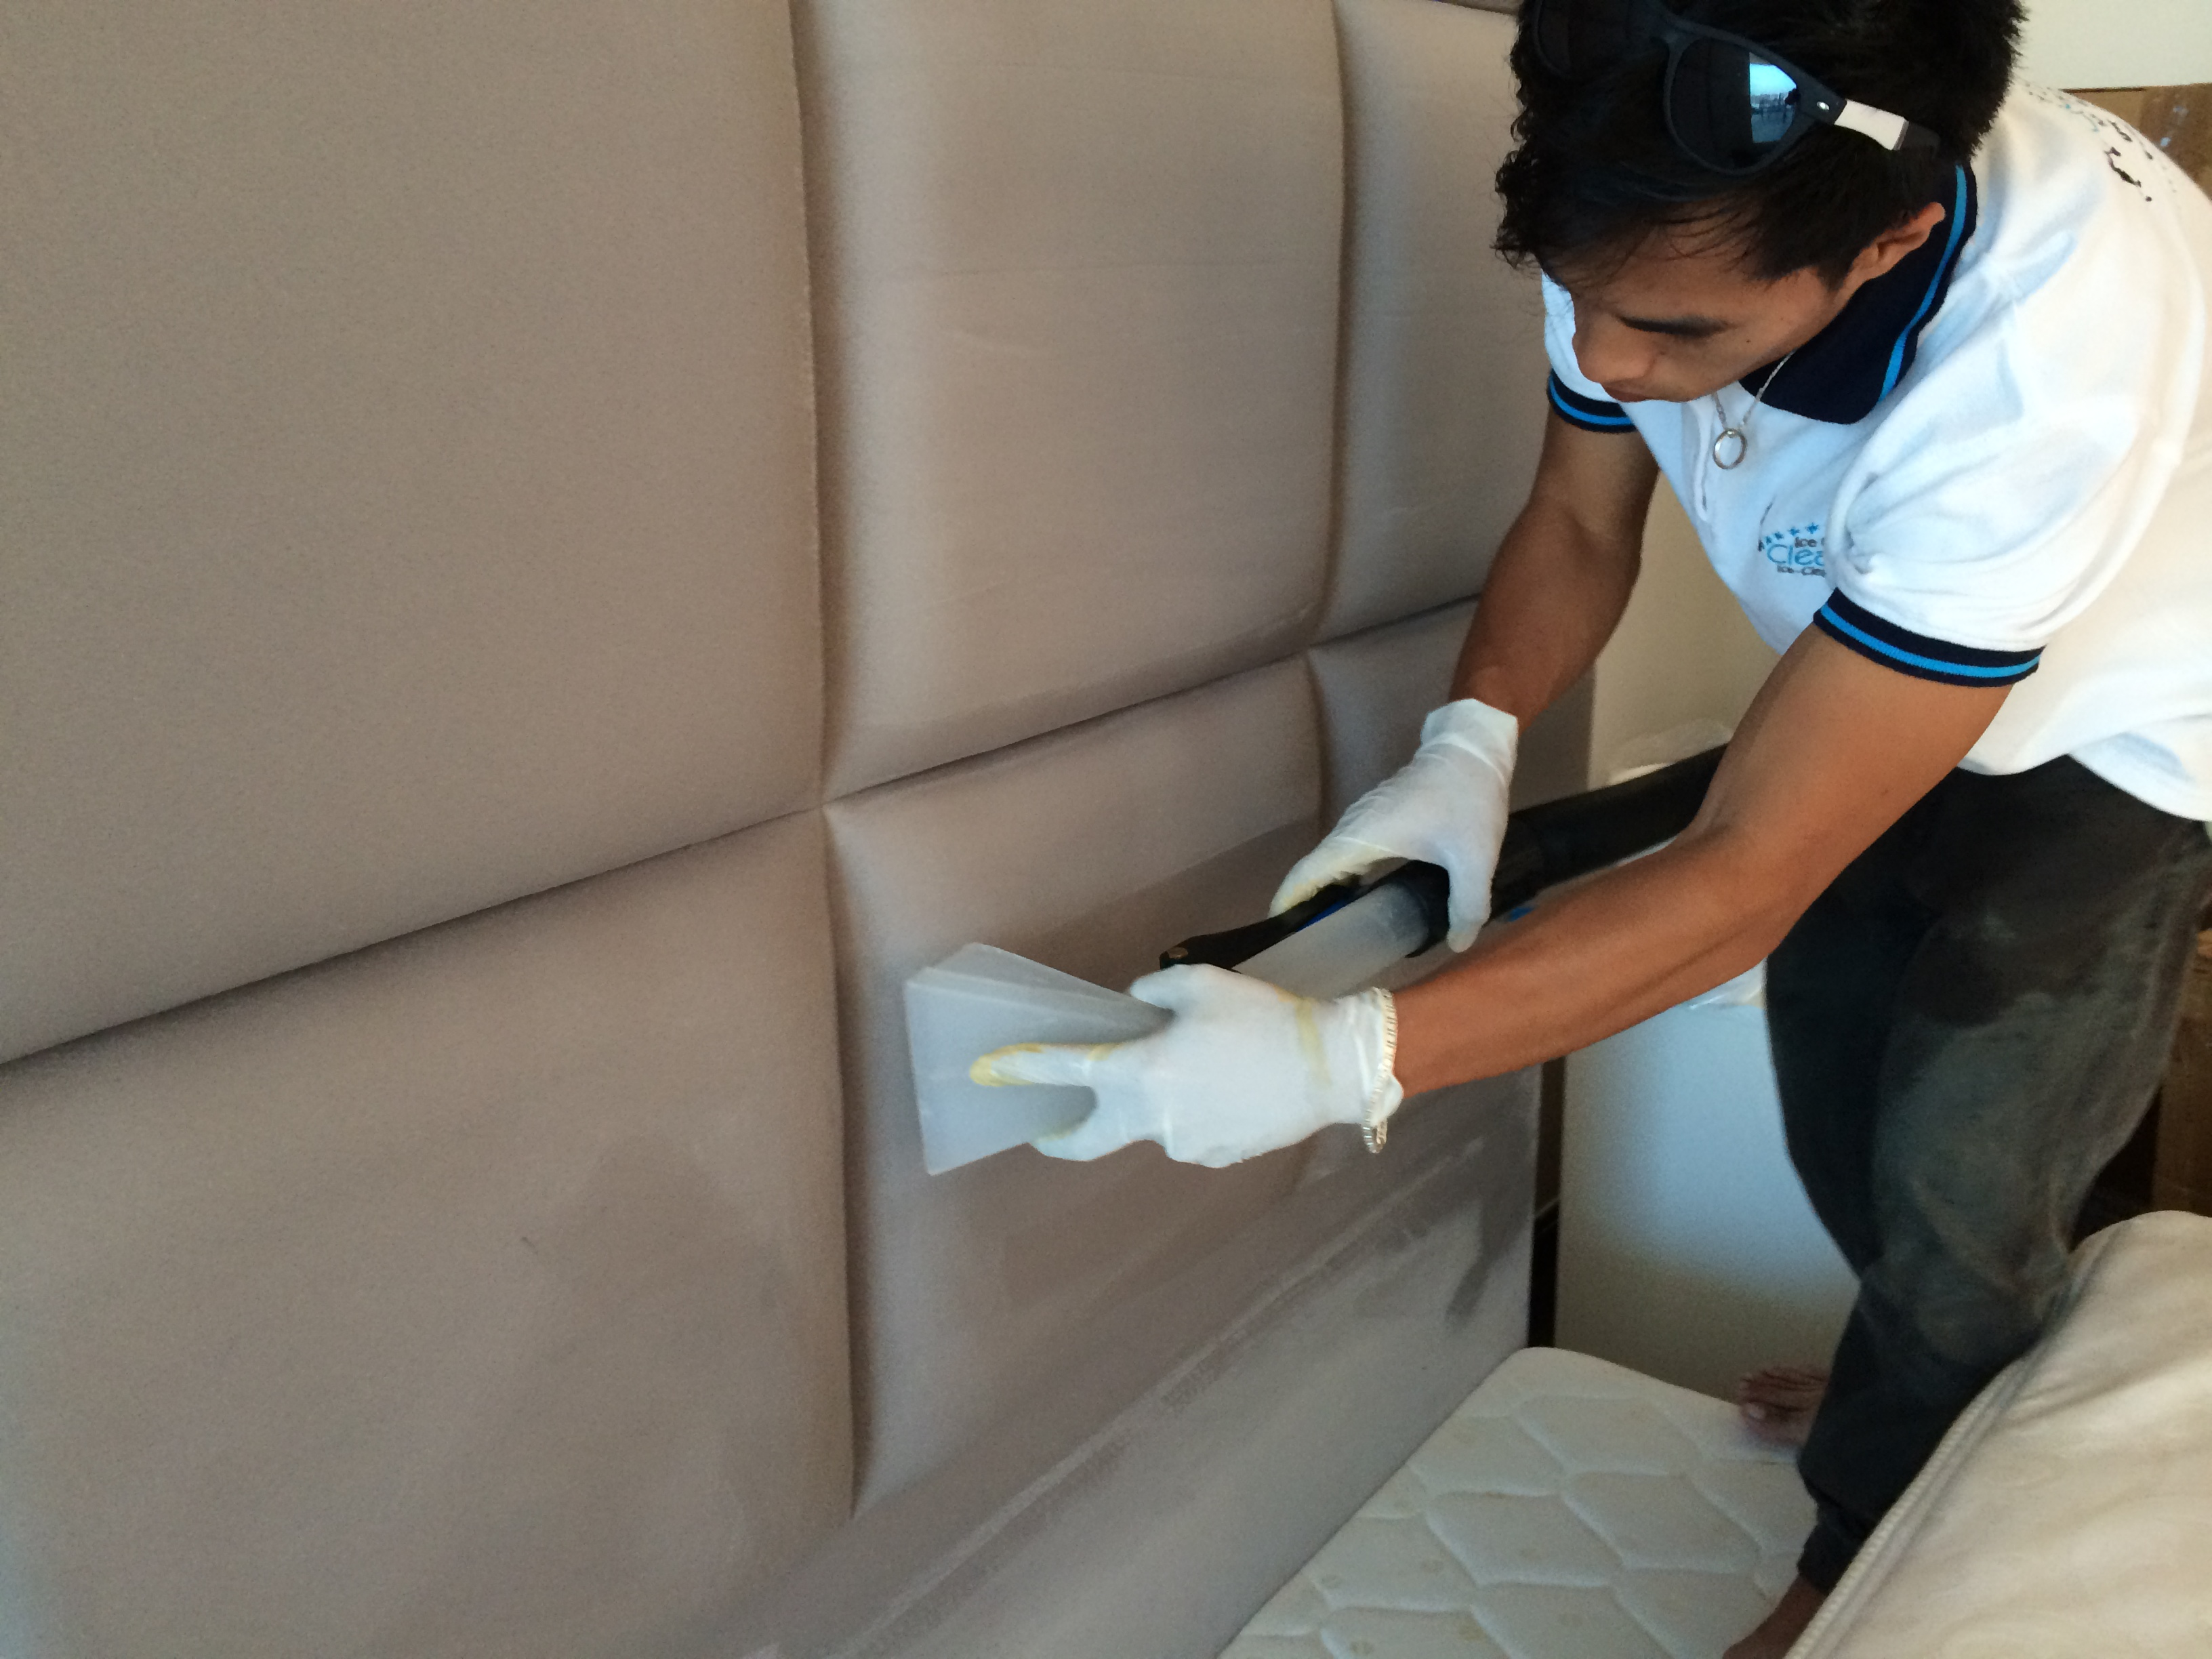 Sofa cleaning service